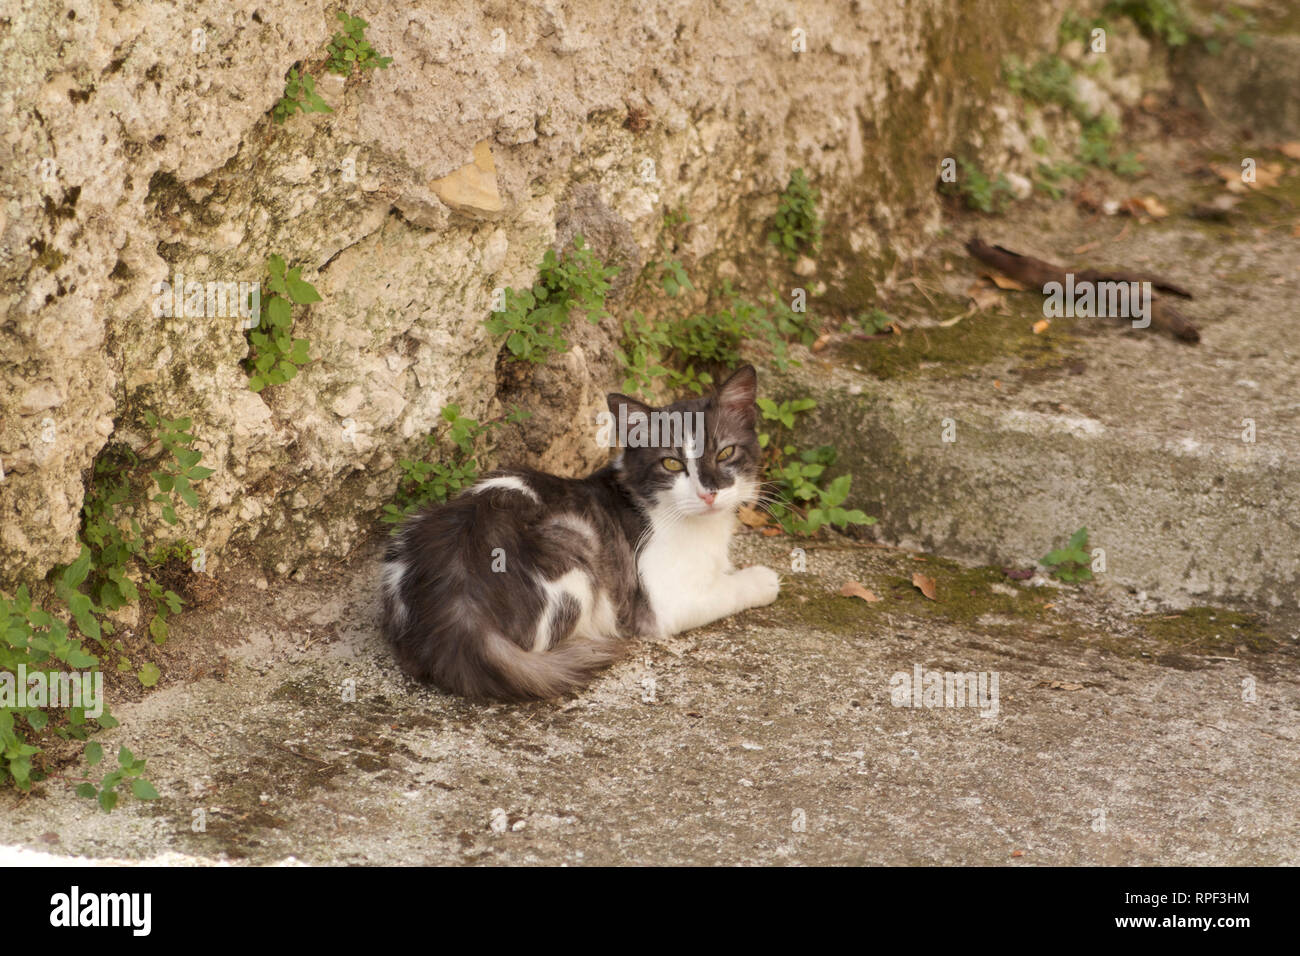 Alvito-Gray cat resting on the steps looking at the camera - Stock Image